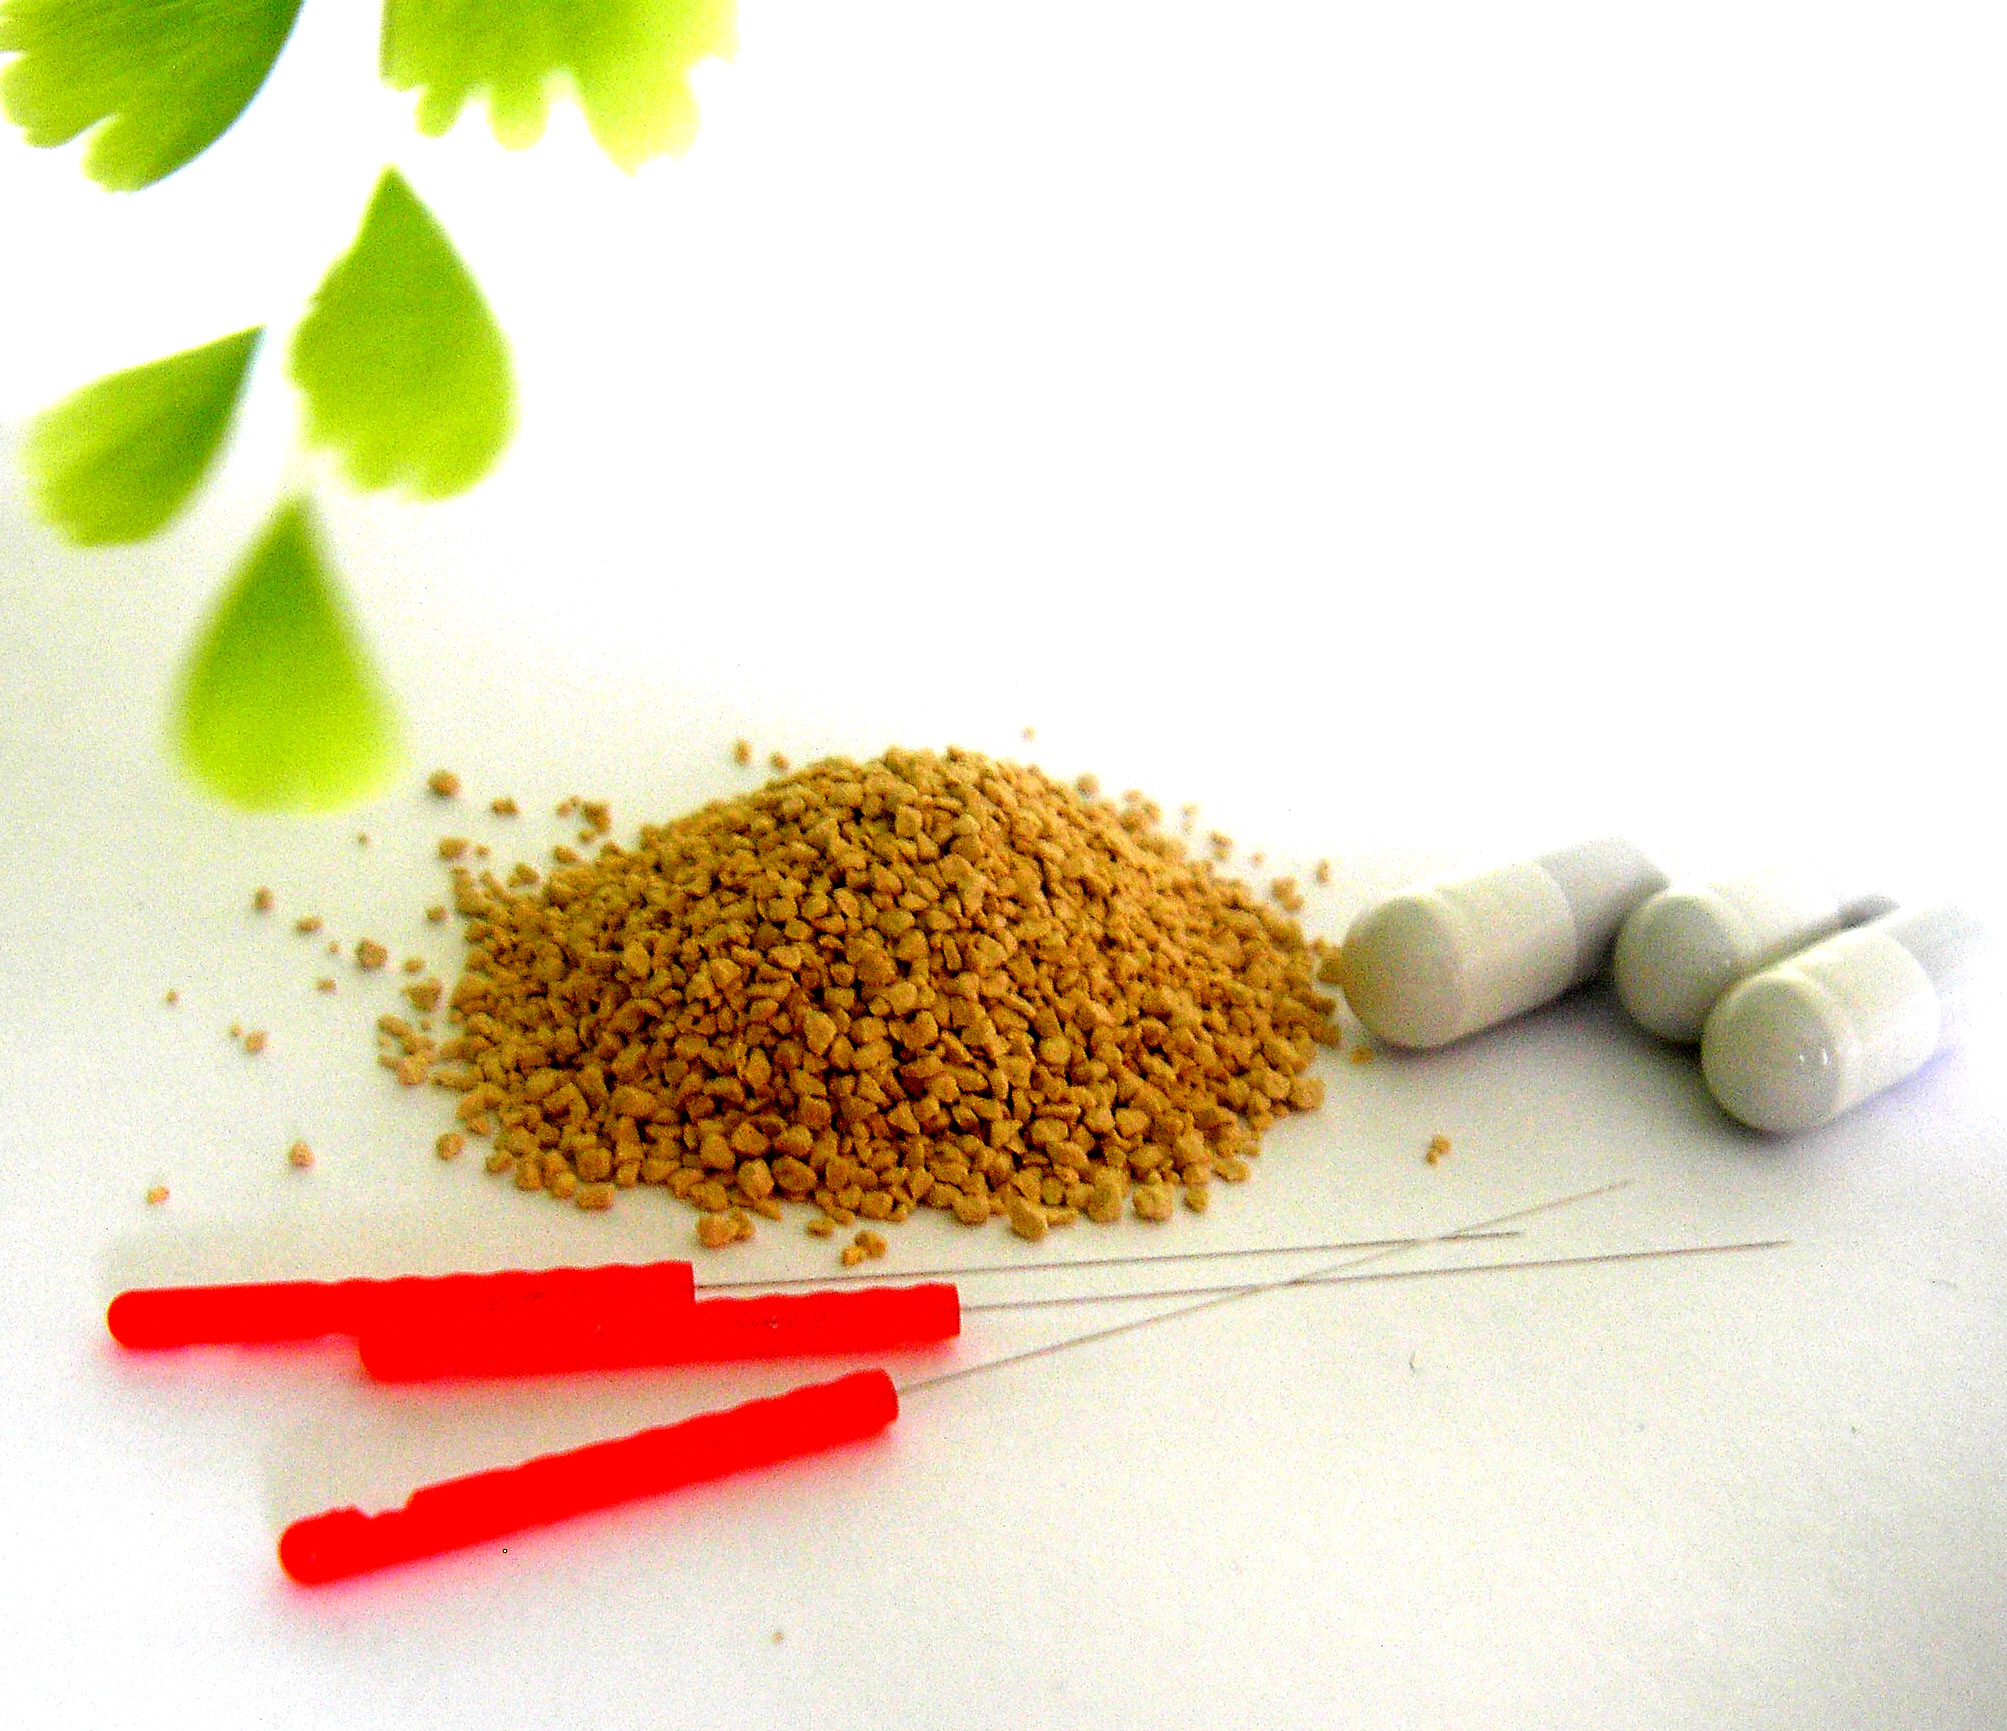 Acupuncture herbes chinoises